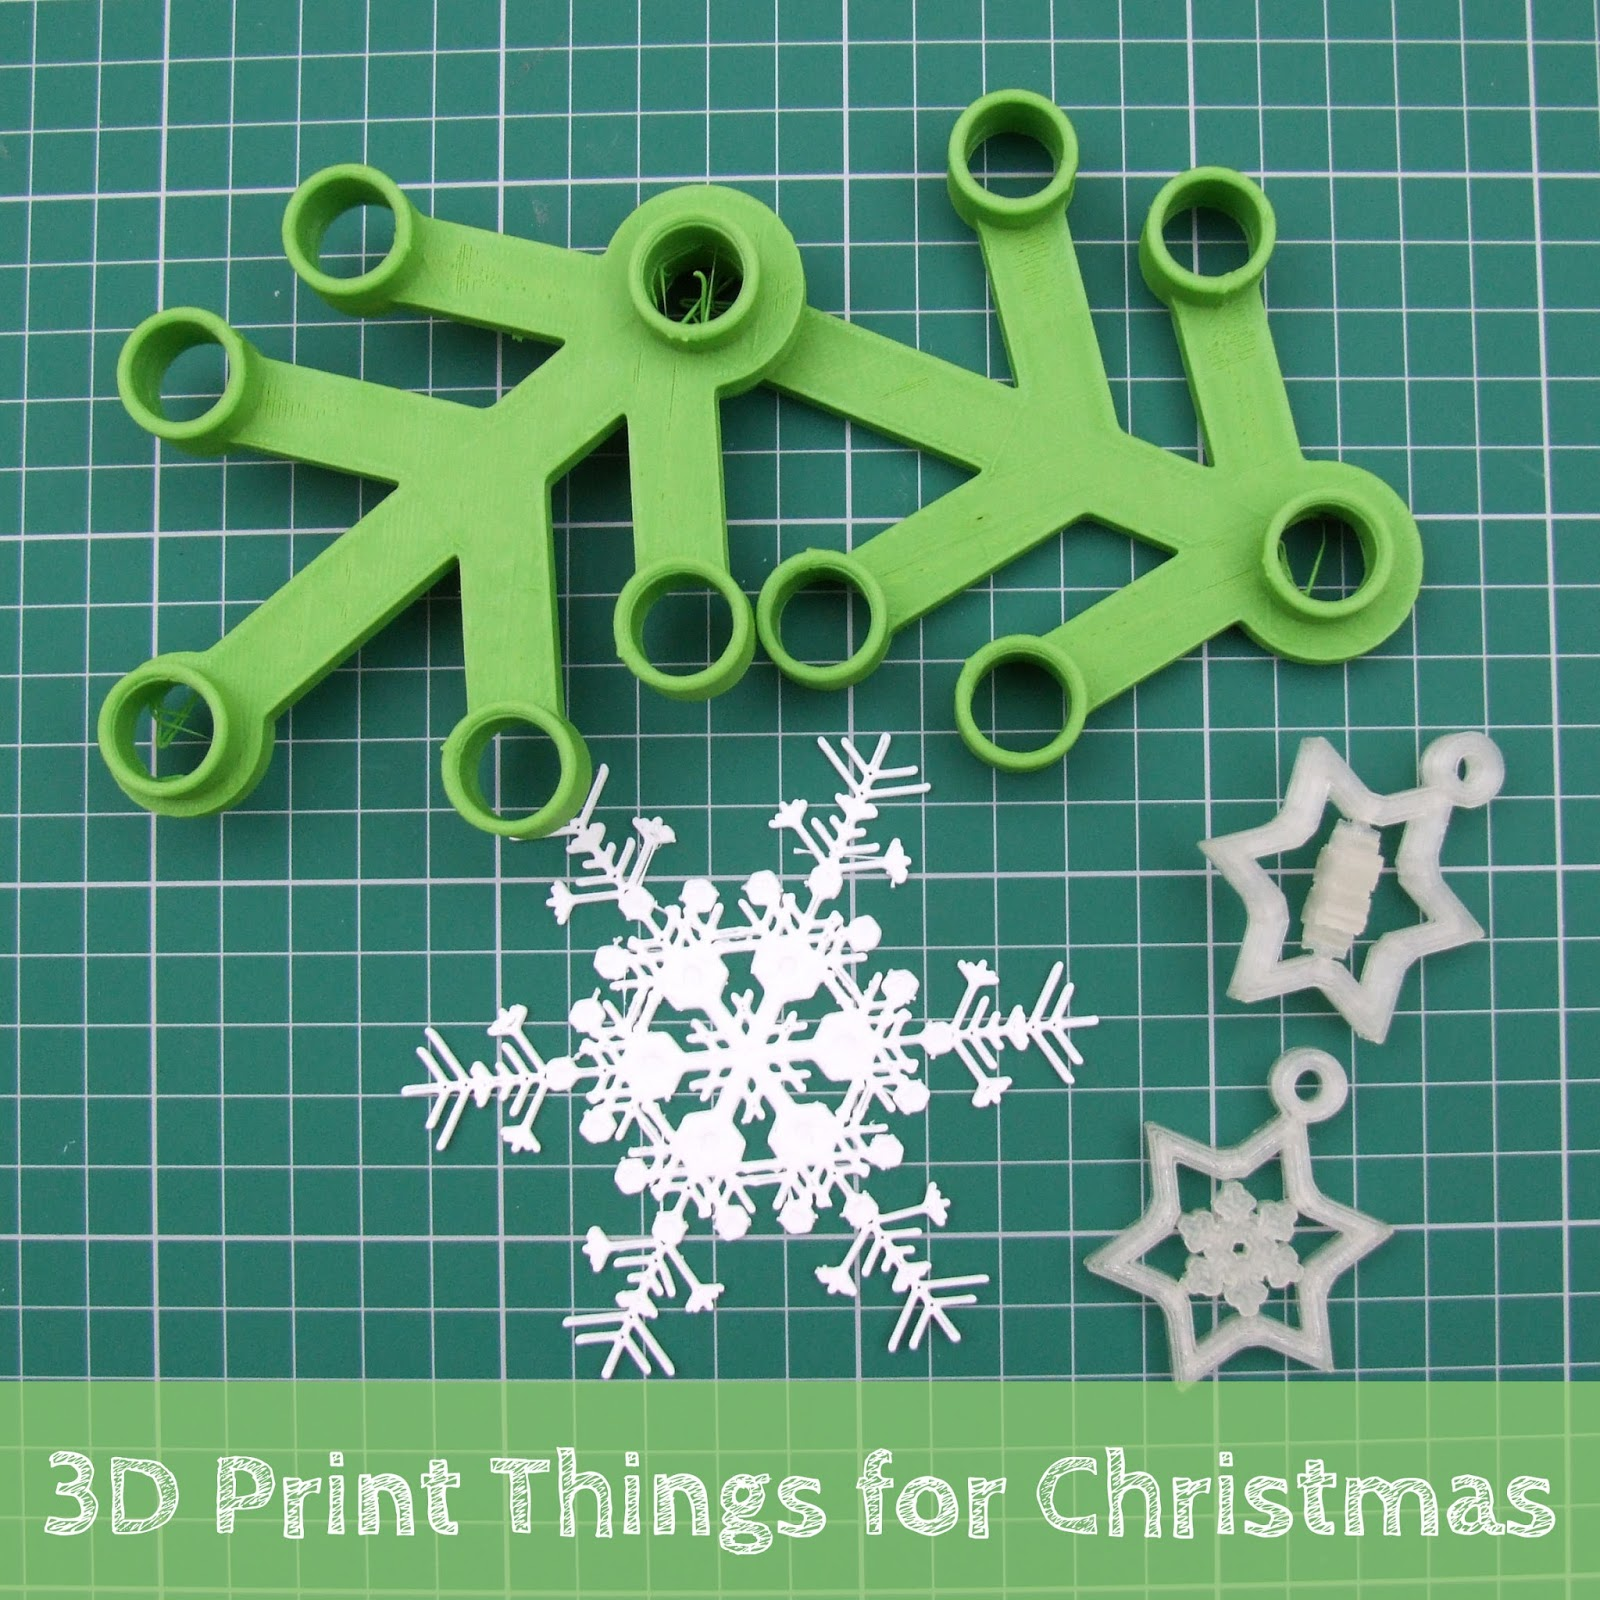 fun christmas things to 3d print for kids and teen - Fun Things To Print